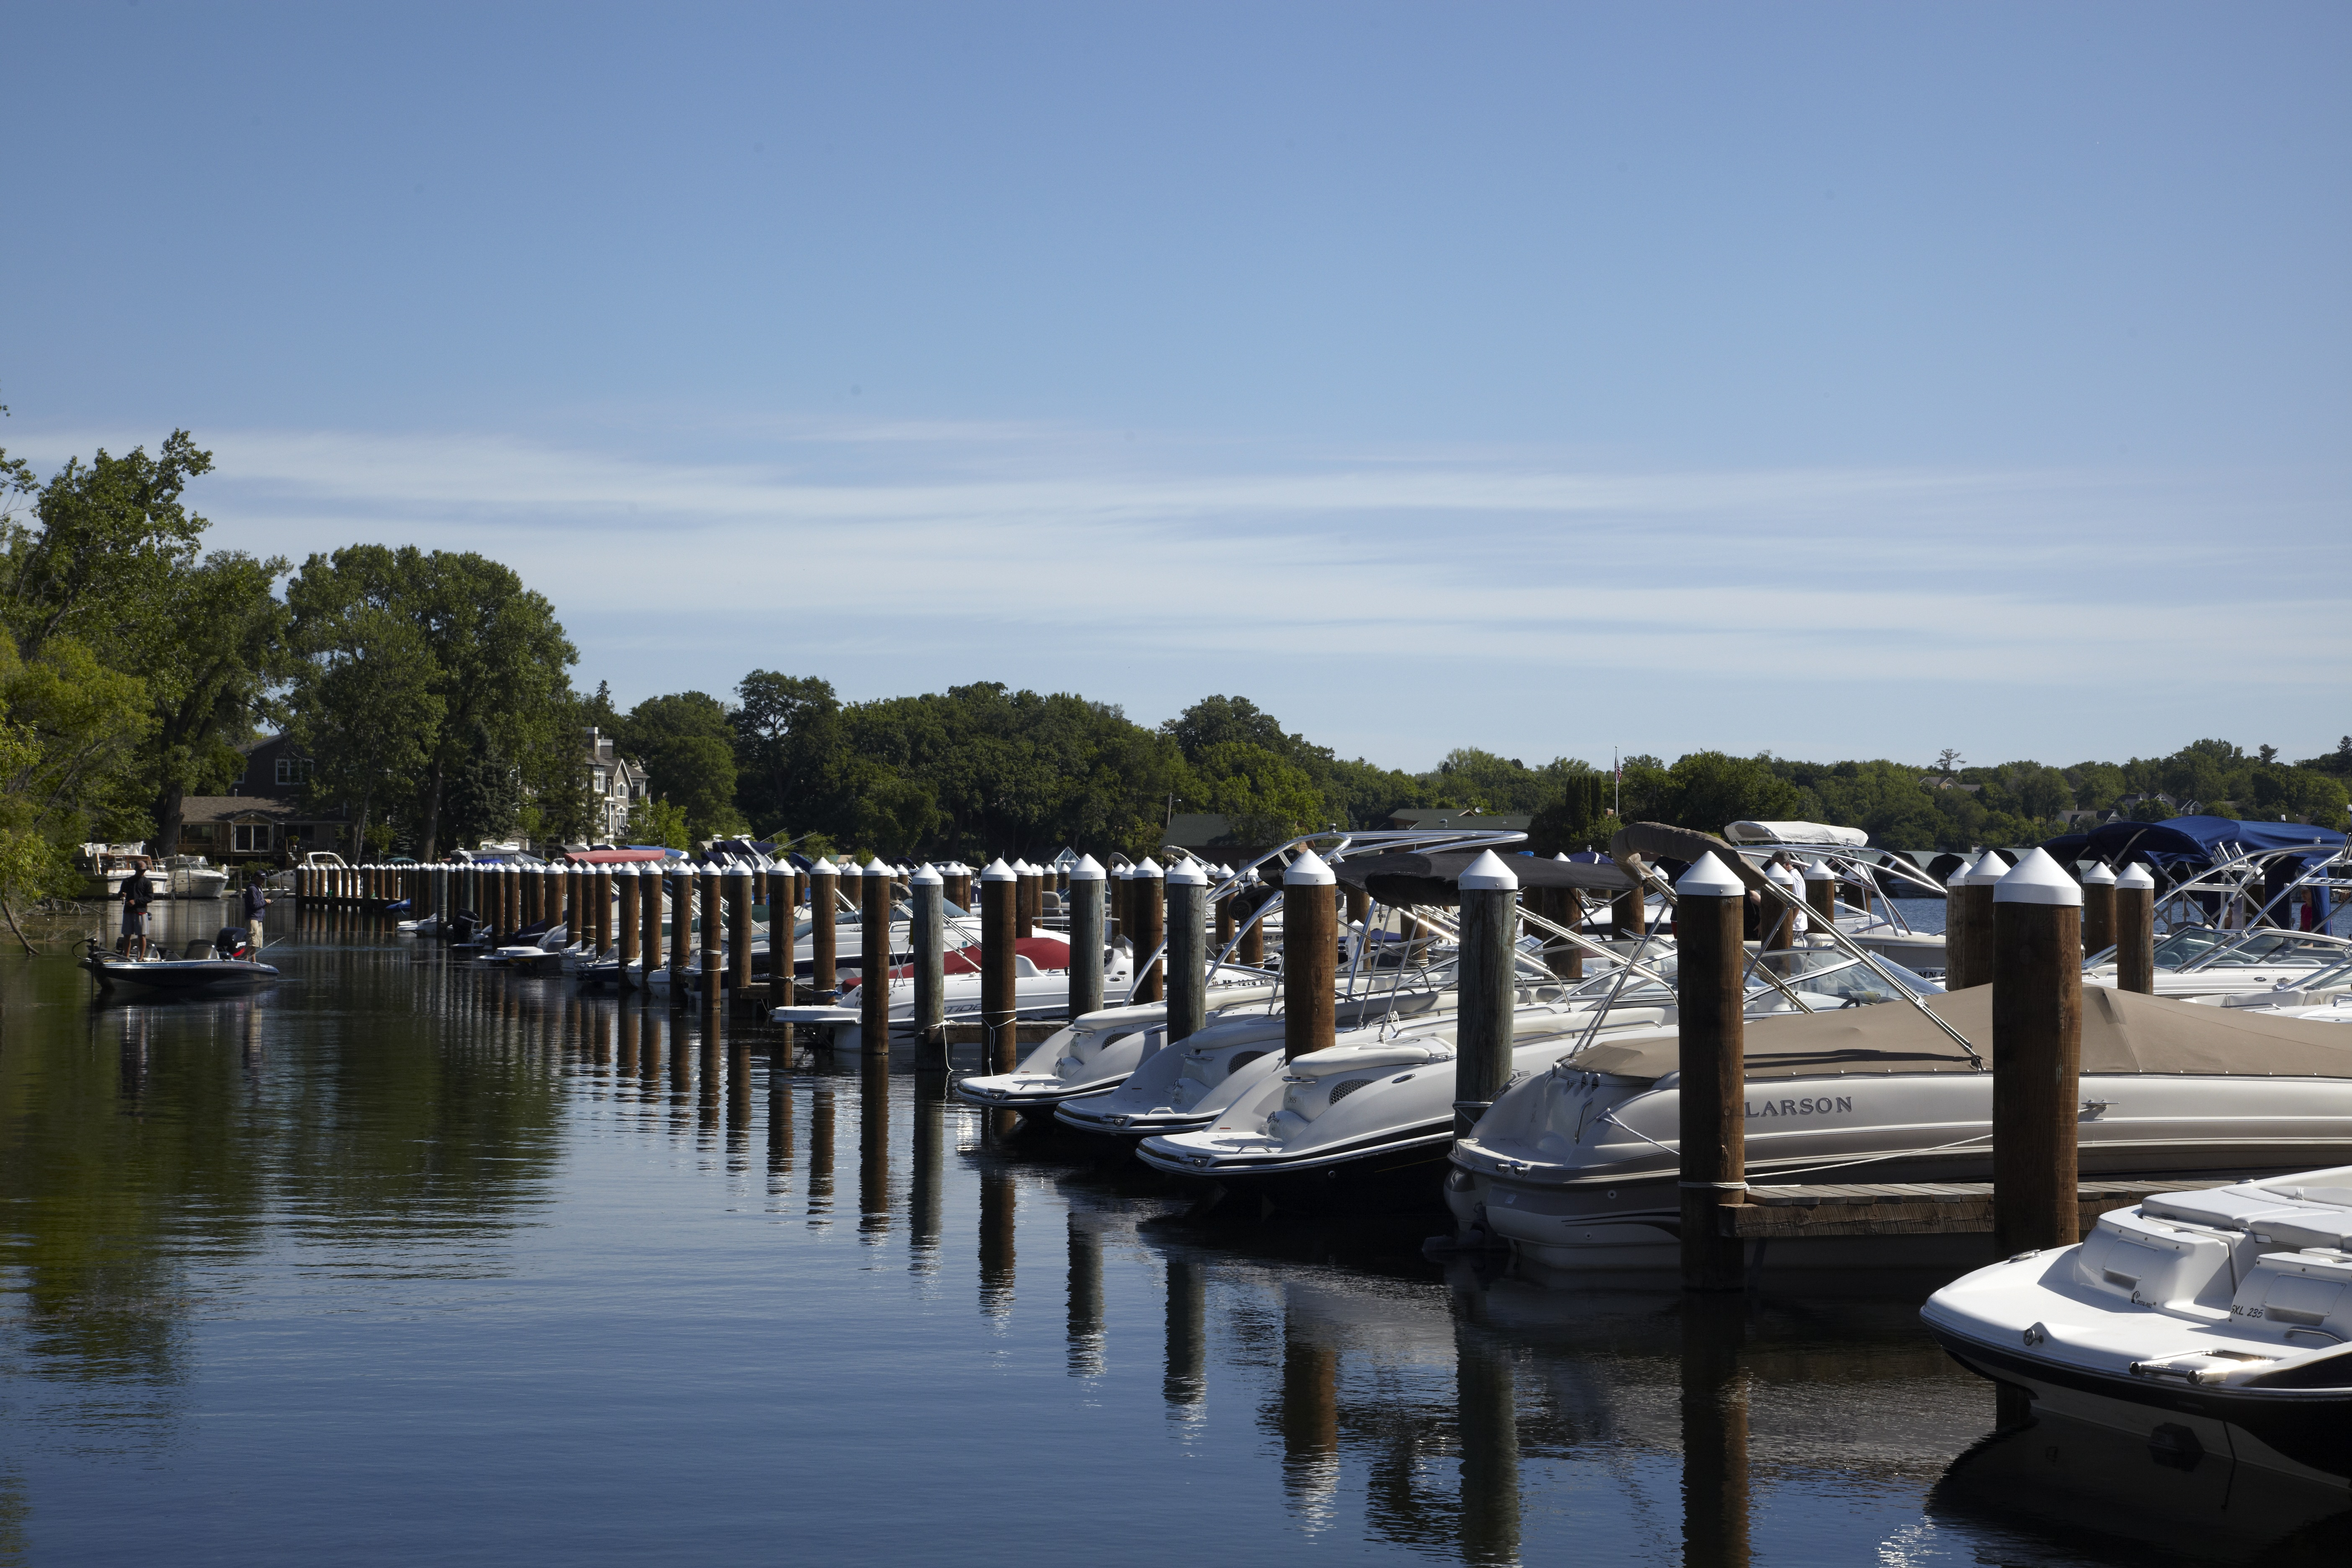 Boats in Excelsior